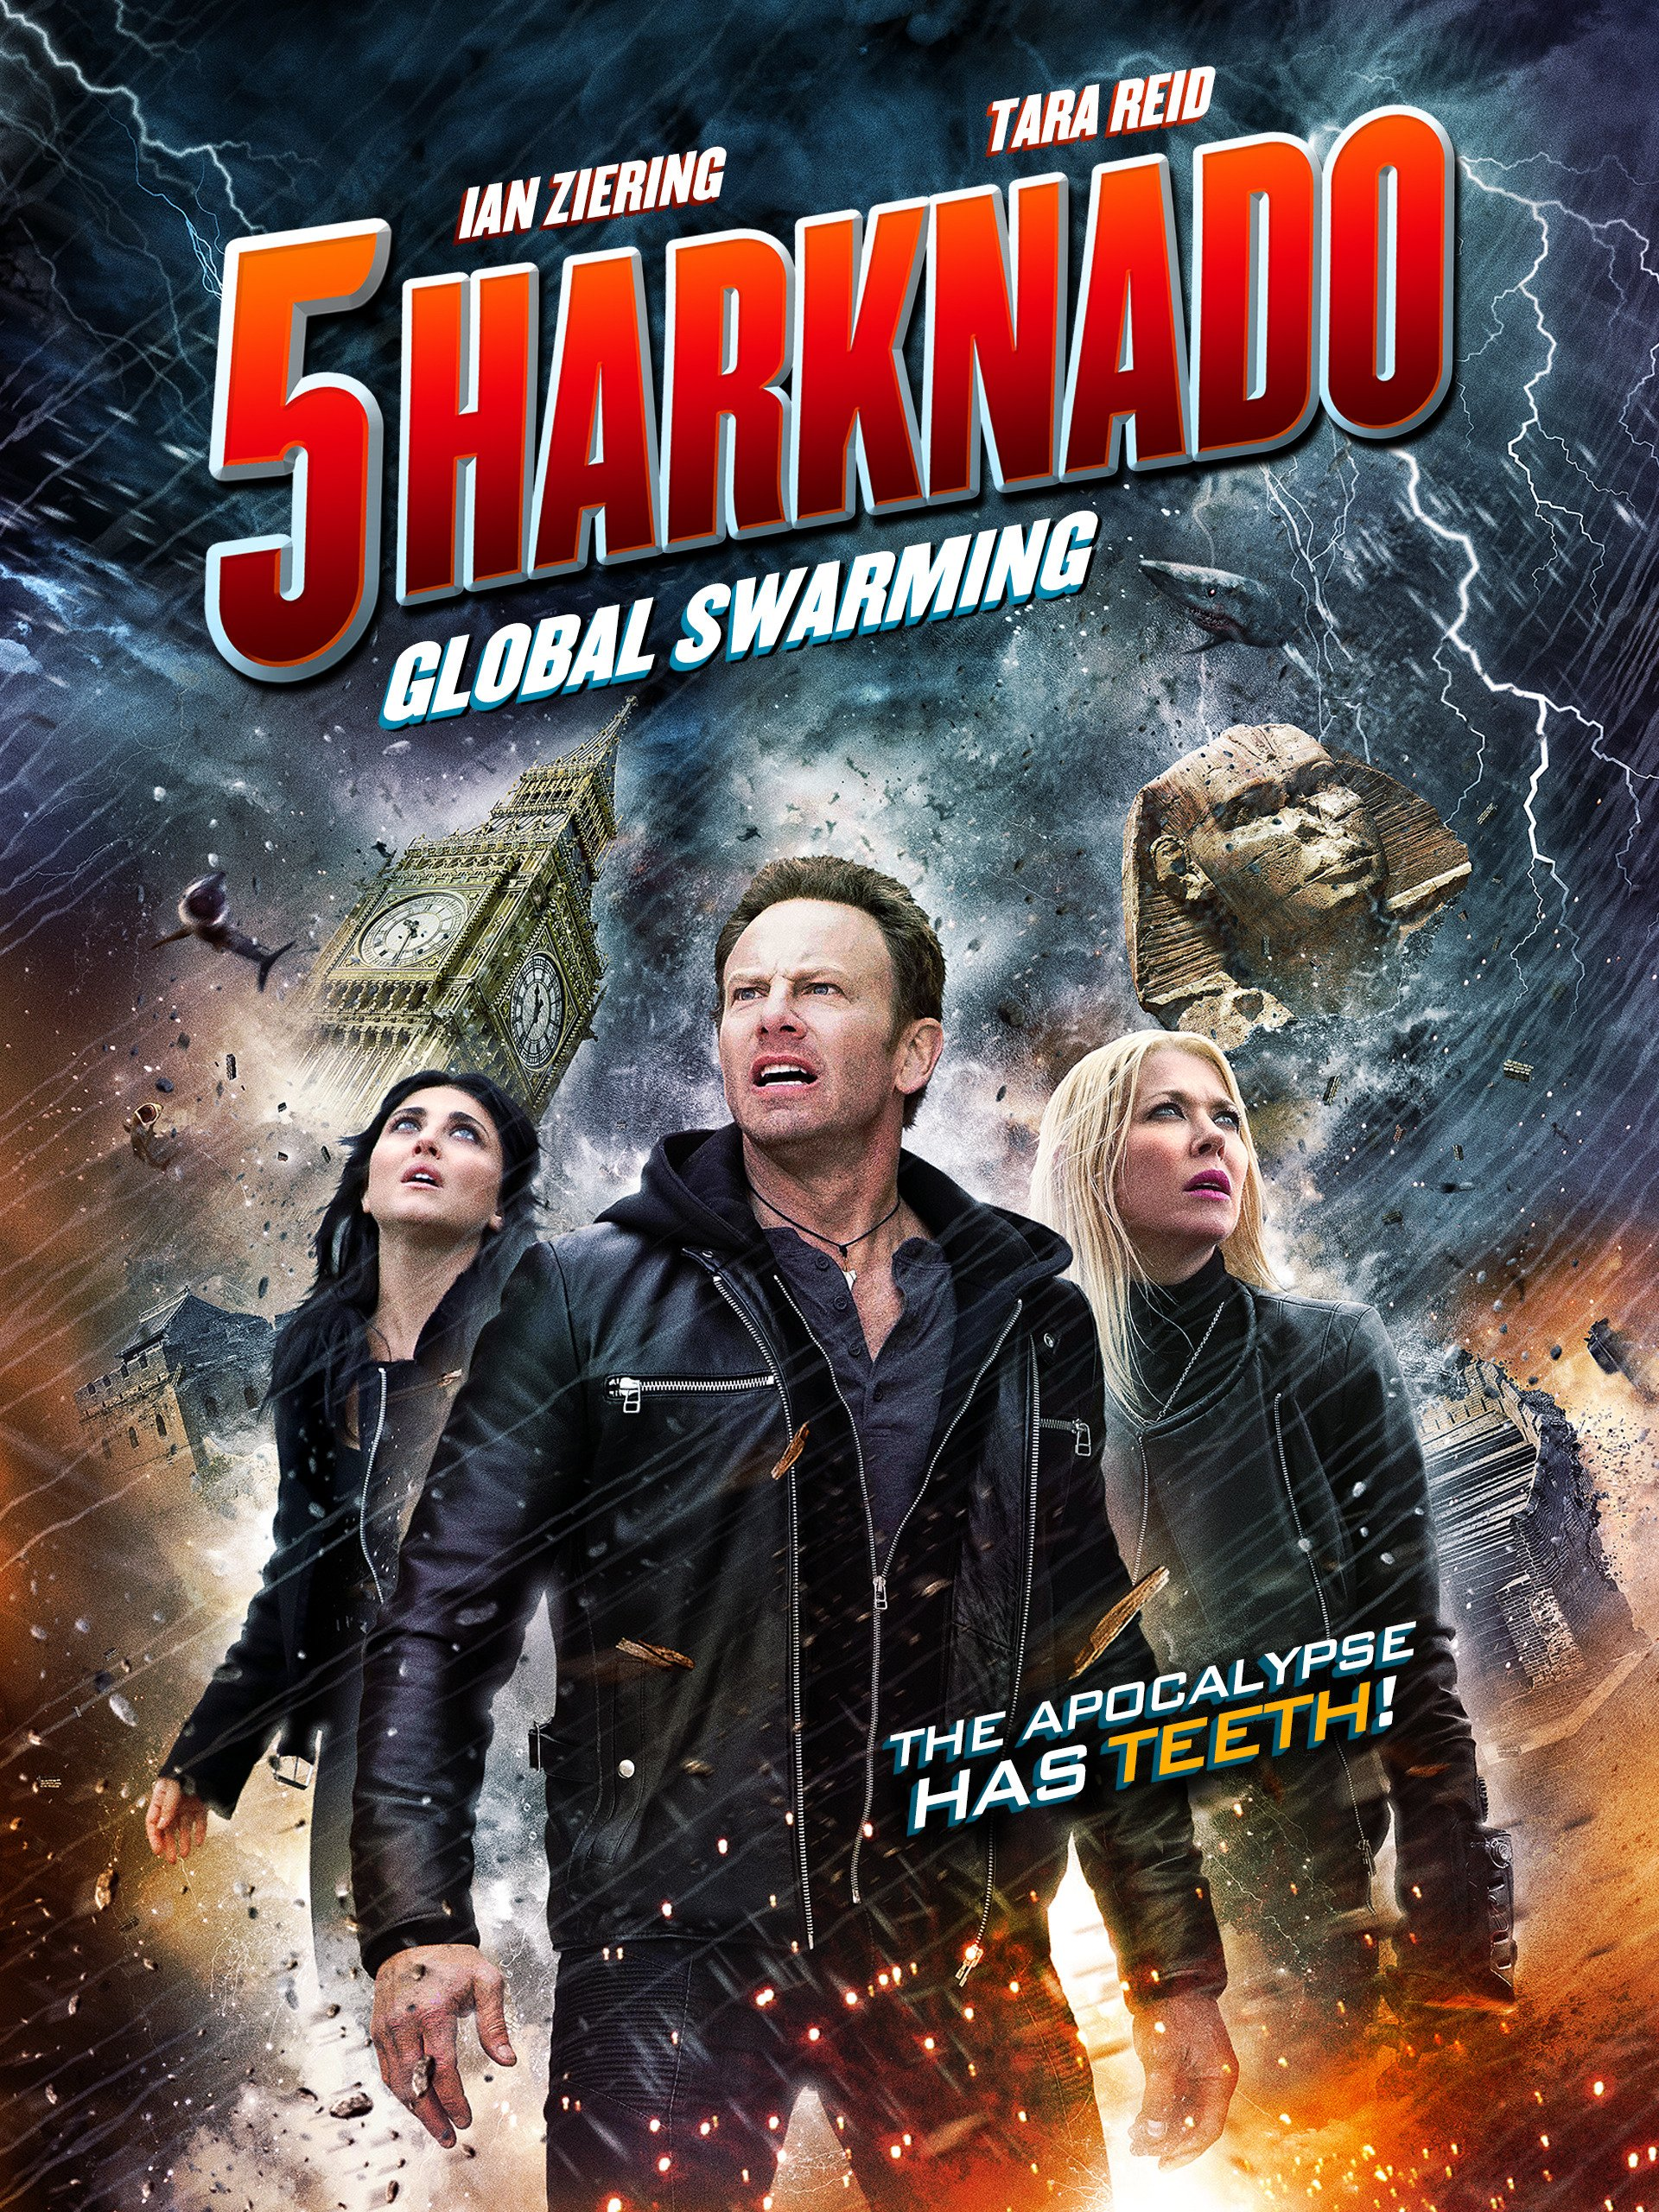 Meteor Illogical Gary Busey Is To Star In Sharknado 4 Playing Tara Reid S Father